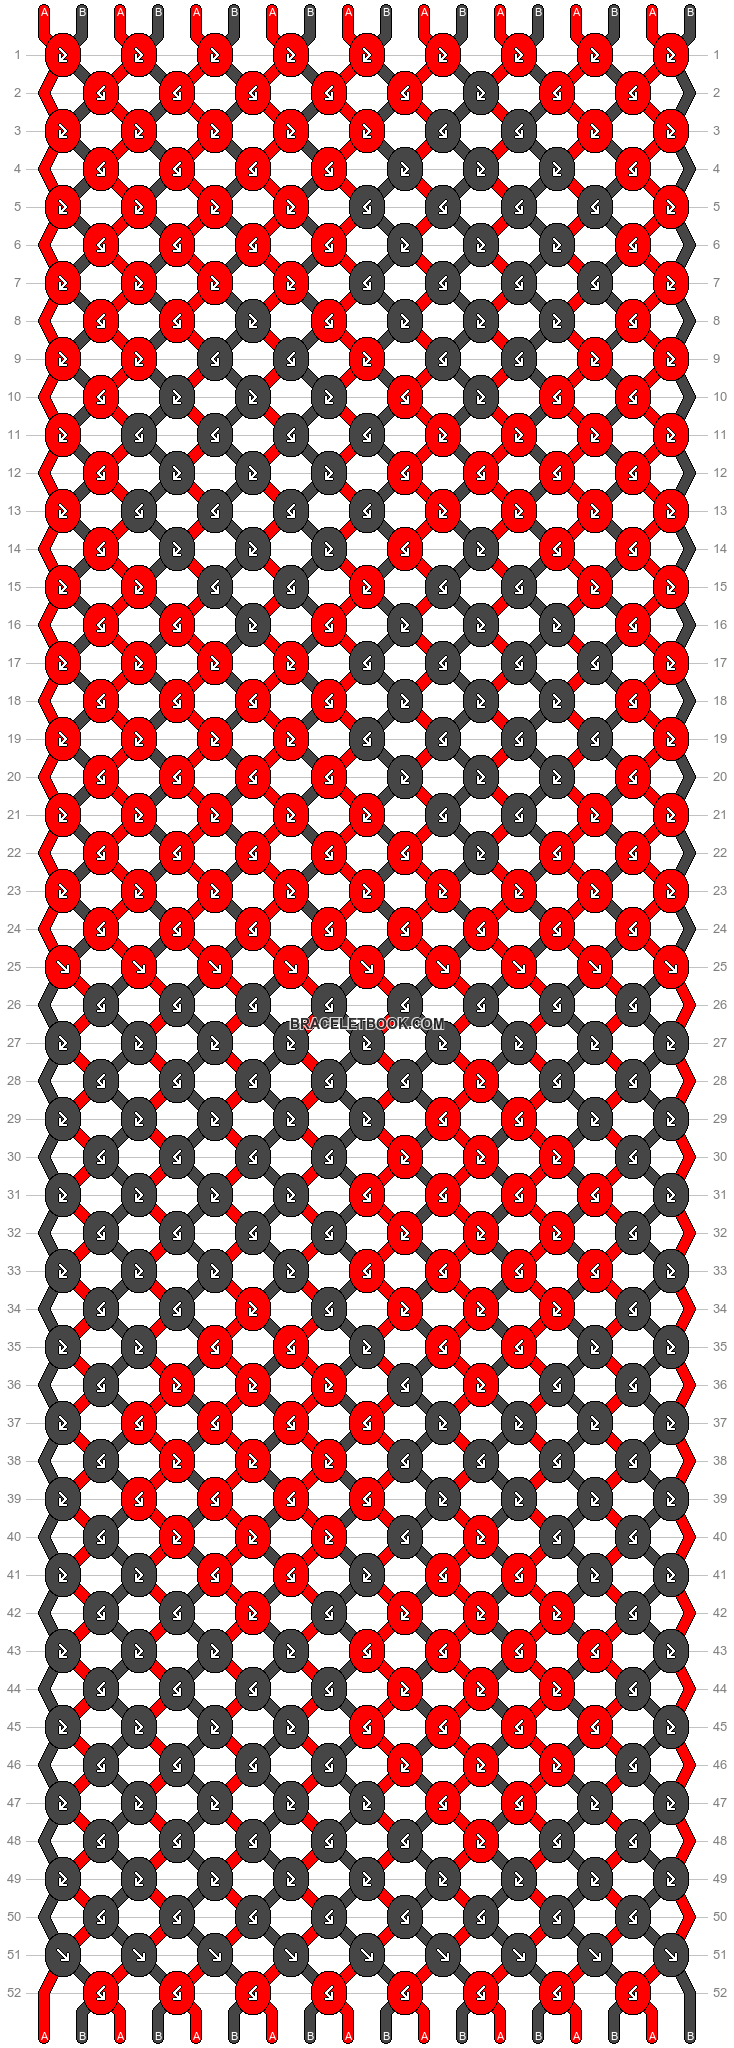 Normal Pattern #22606 added by ENCB1408